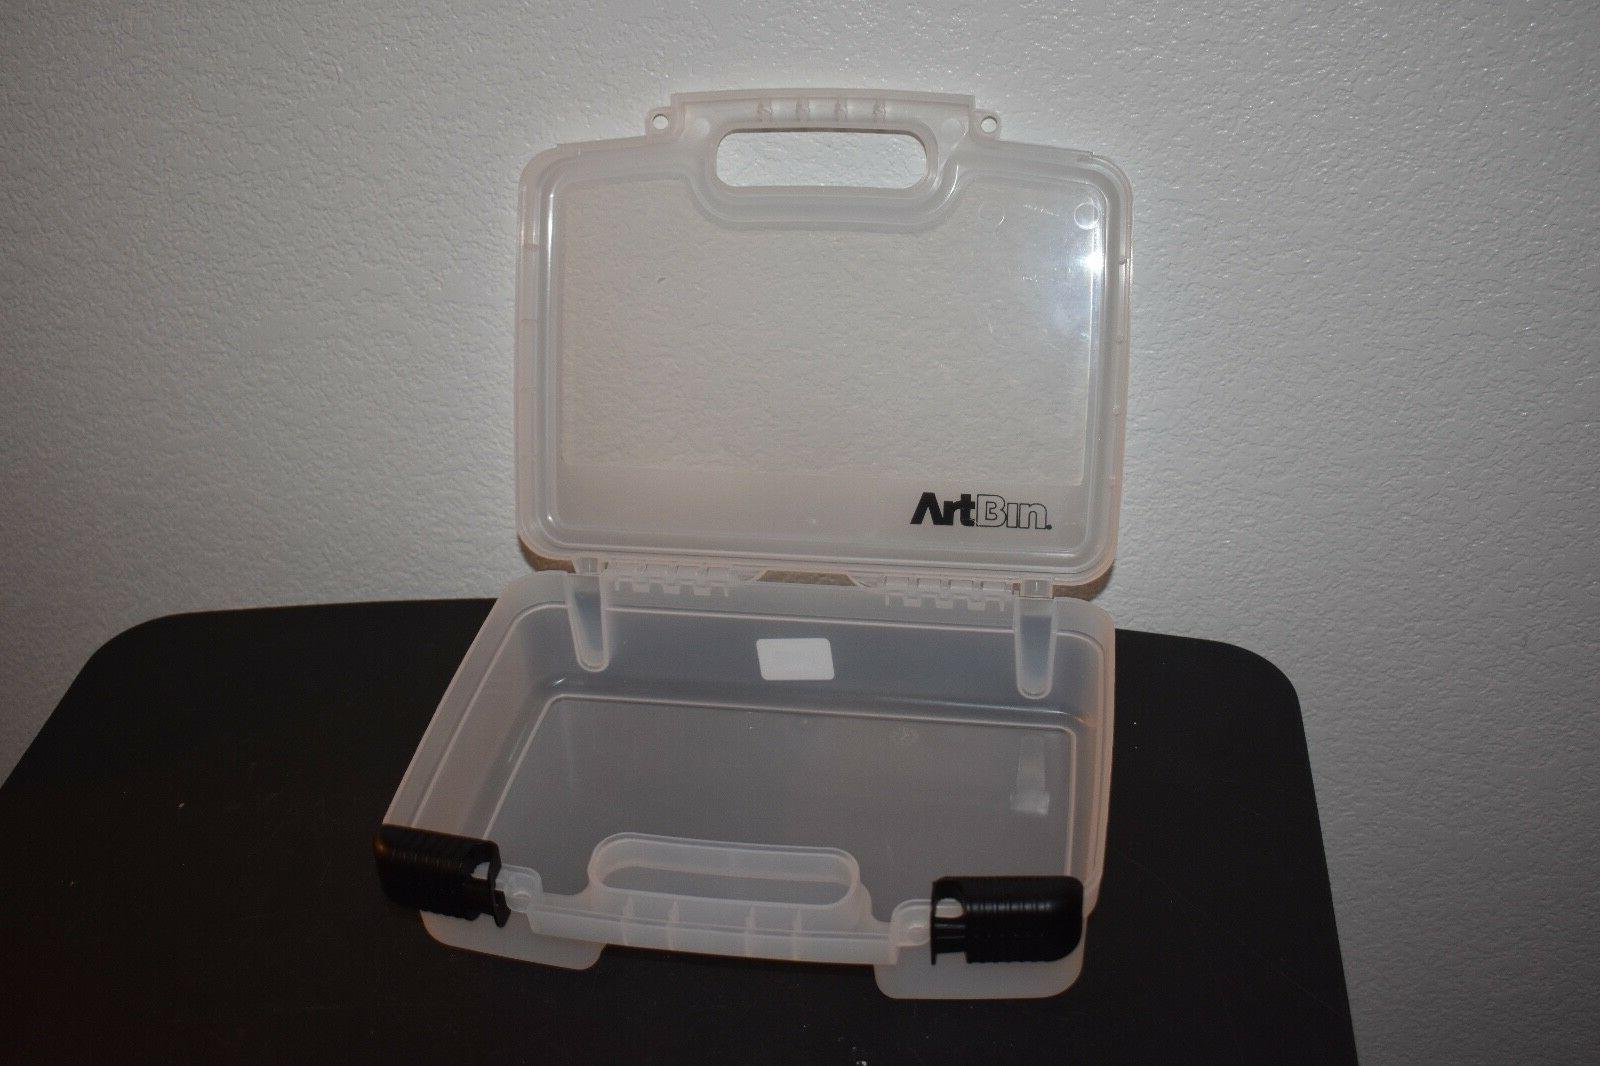 ArtBin Quick View Deep Carrying New